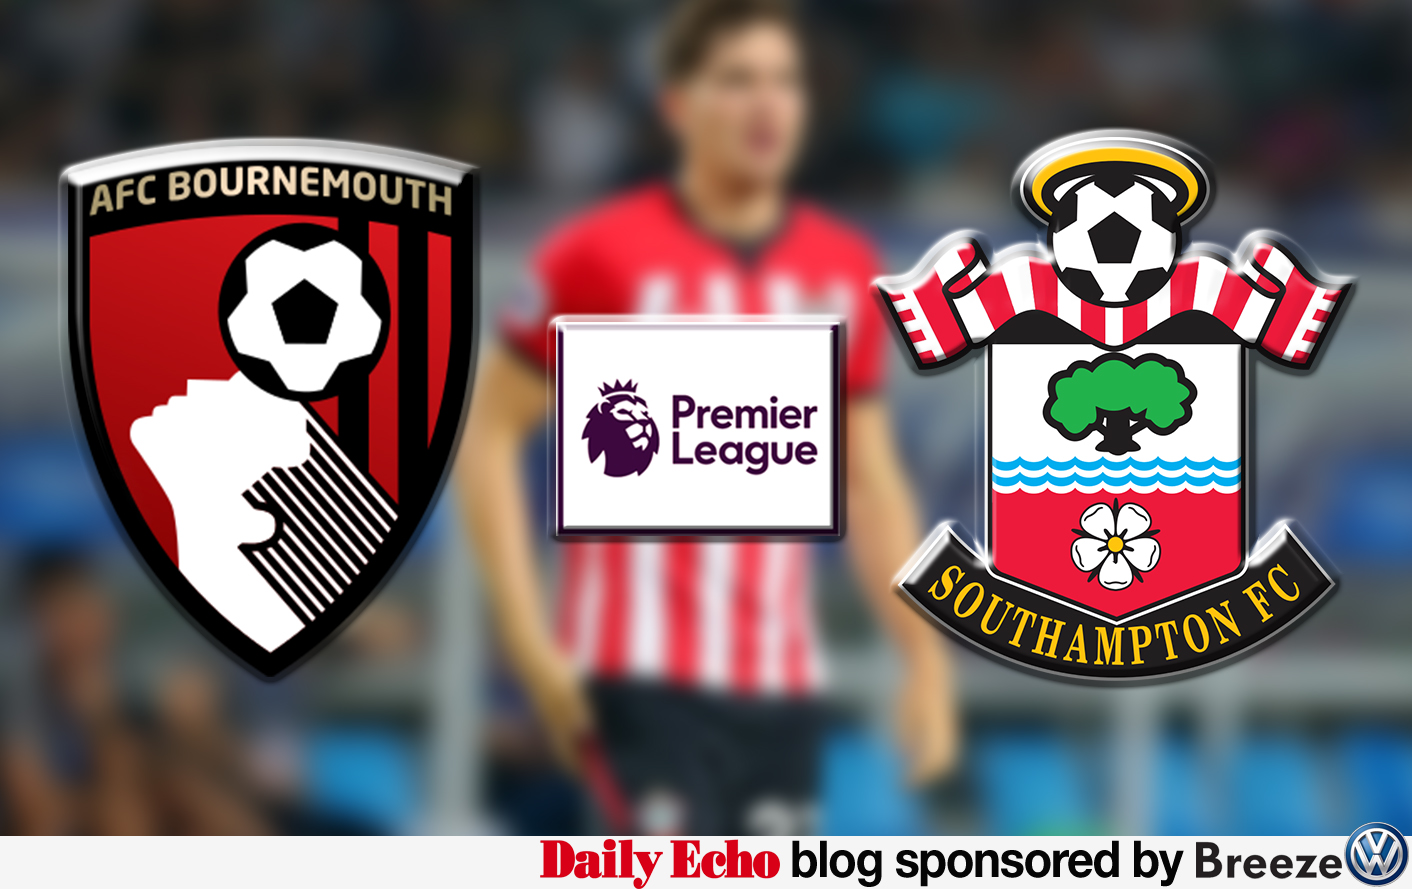 MATCHDAY LIVE: Bournemouth v Saints